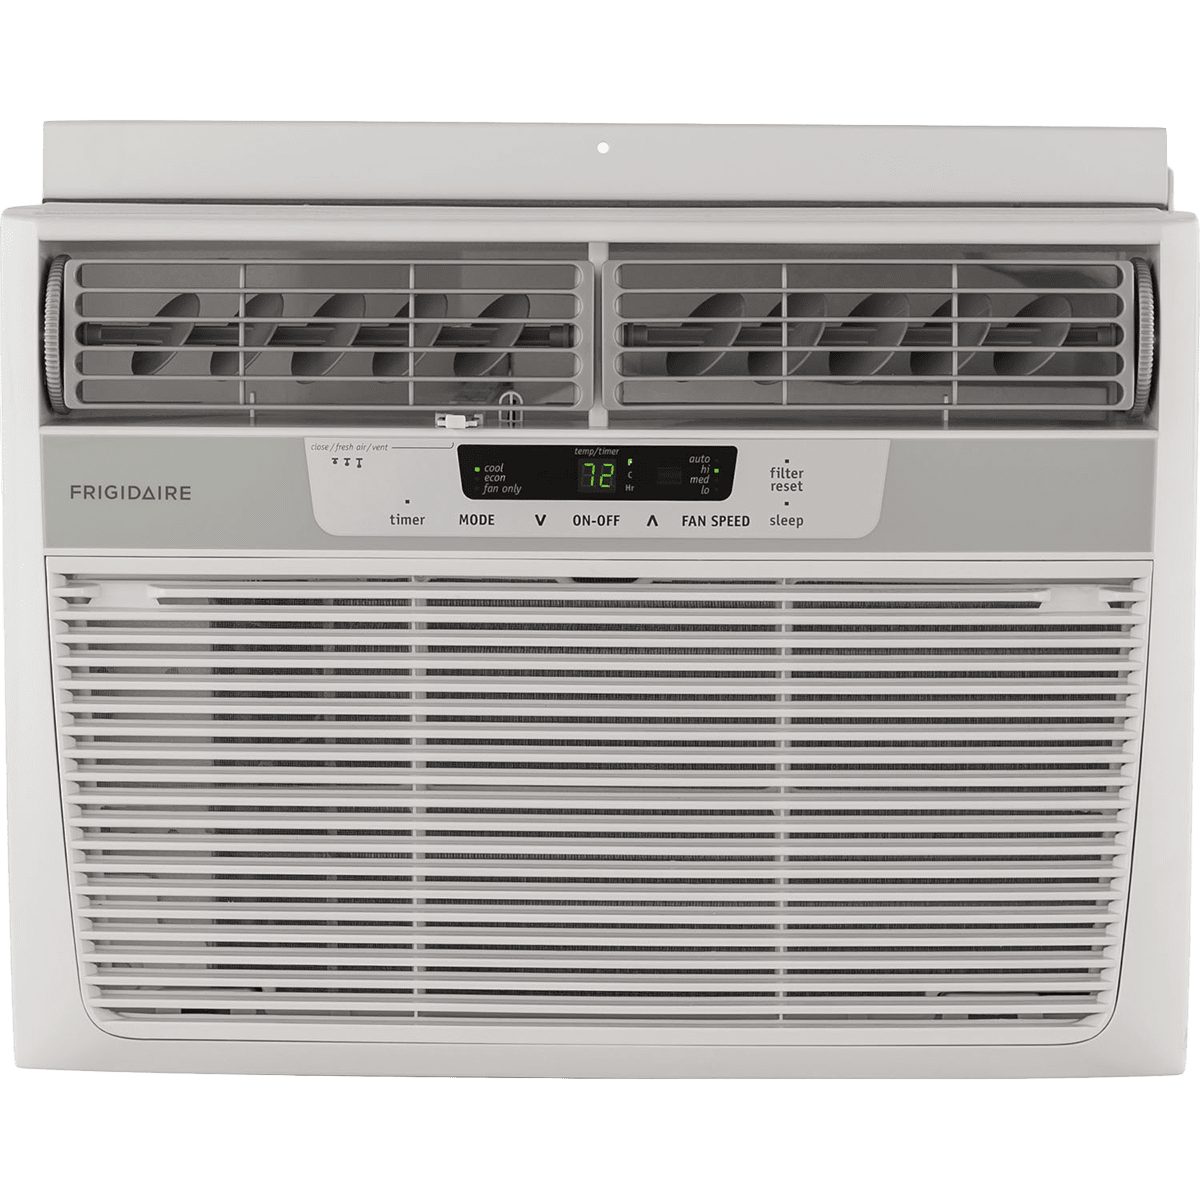 Frigidaire FFRA1222R1 12,000 BTU Window Air Conditioner fr5378